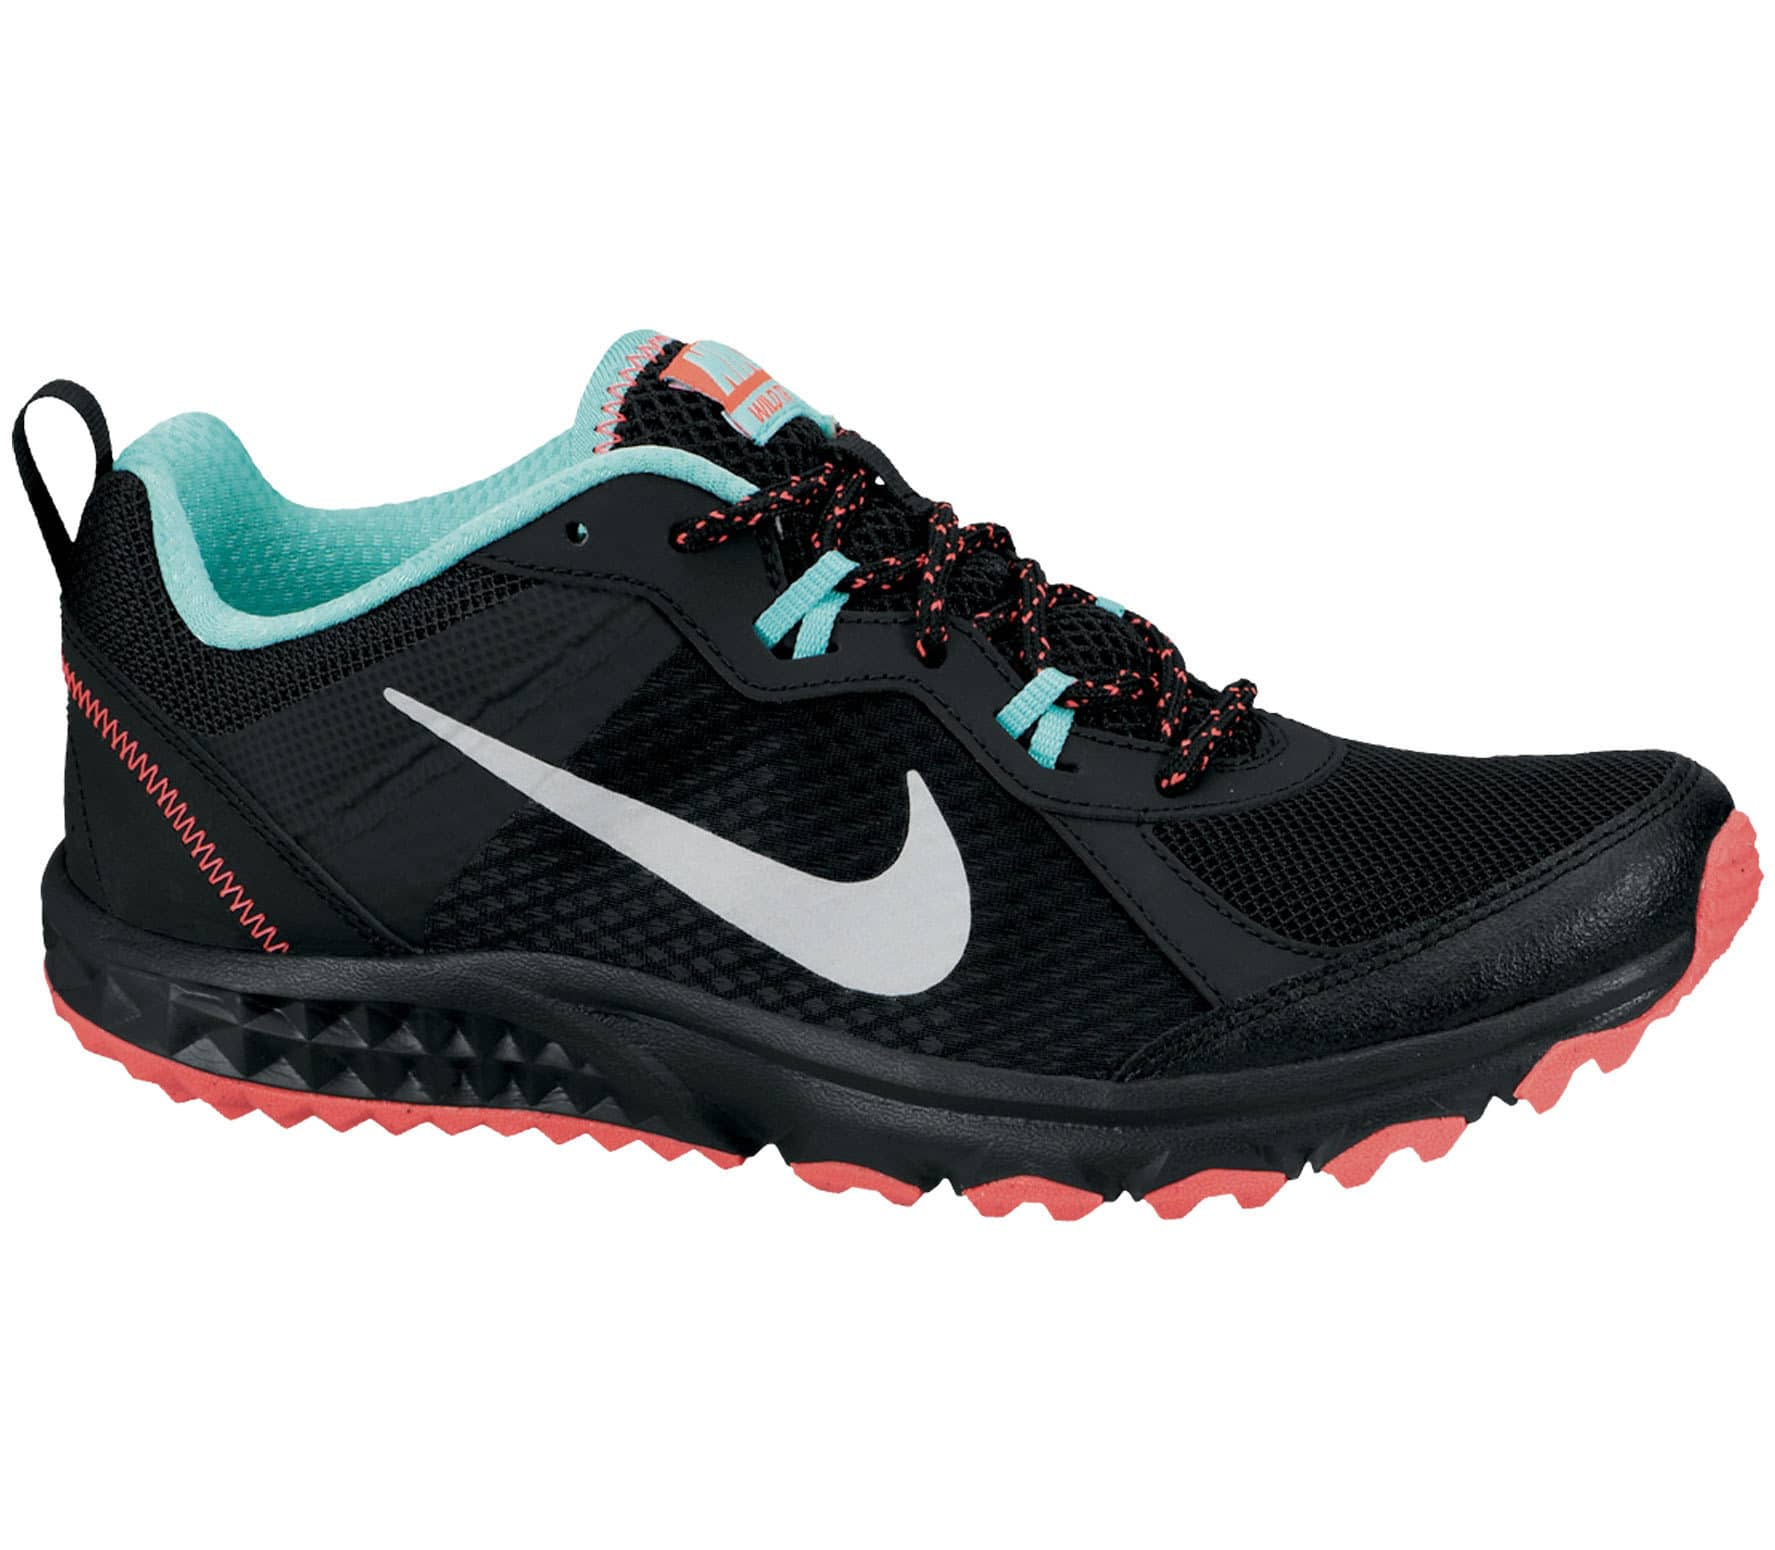 3a881c9dea4c3 Nike - Wild Trail women s running shoes (black) - buy it at the ...